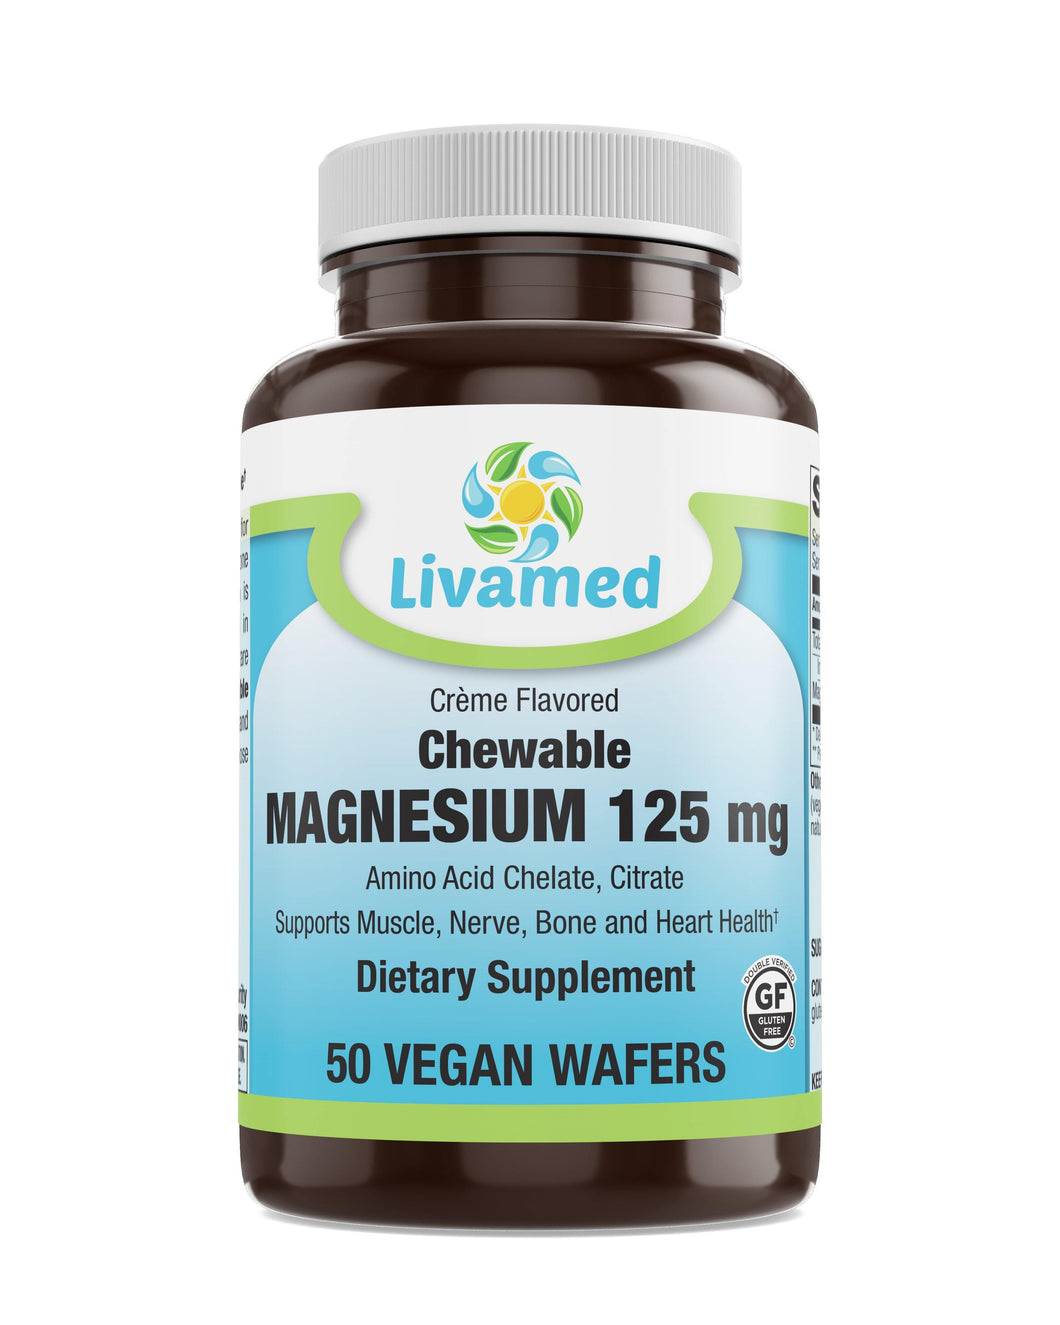 Livamed - Chewable Magnesium 125 mg Veg Wafer 50 Count